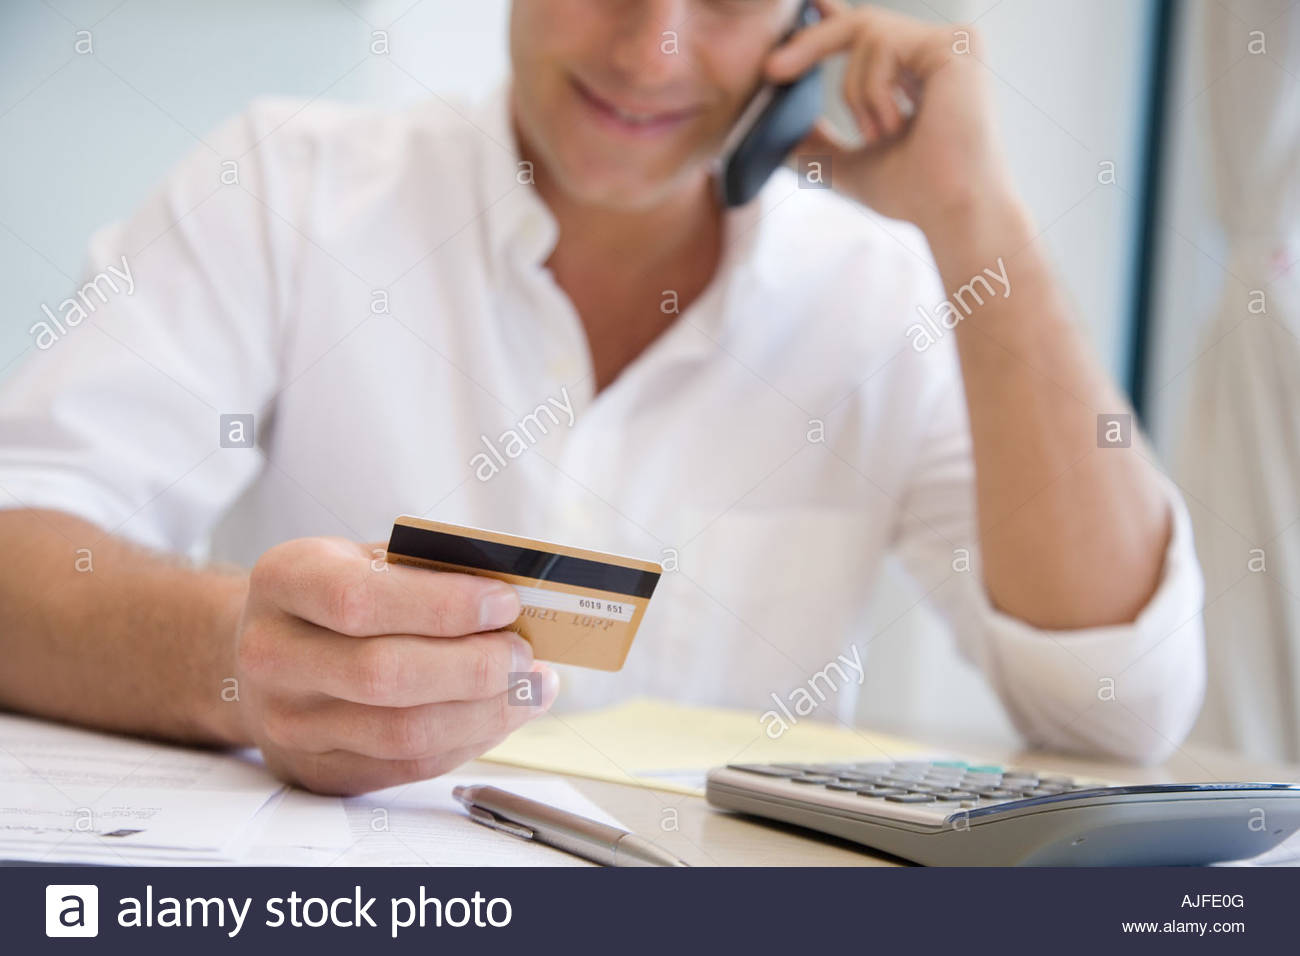 A man telephone banking - Stock Image